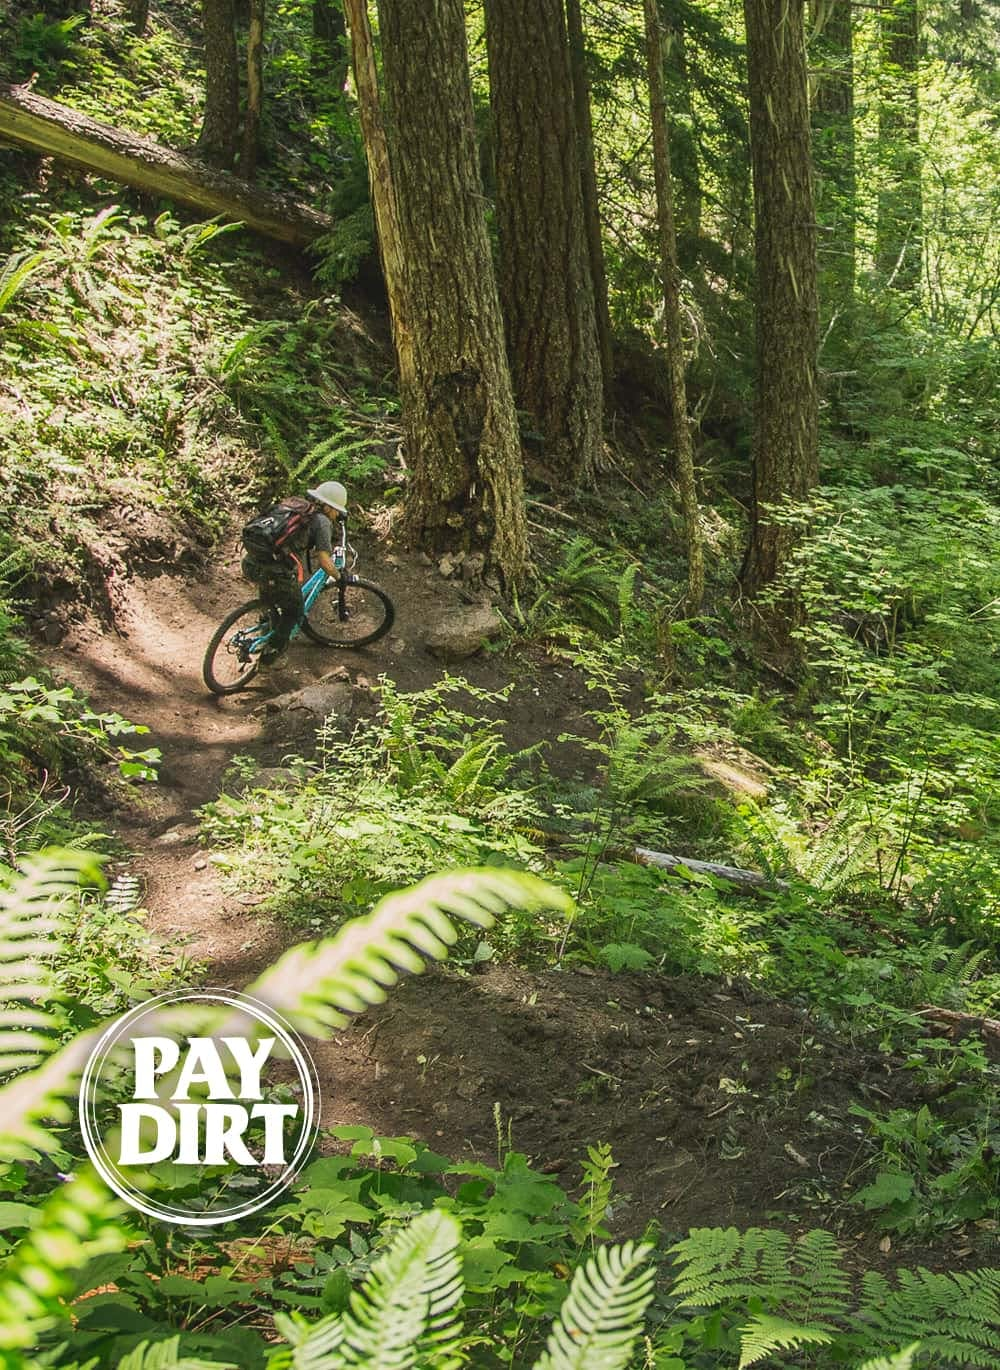 Trail worker riding singletrack in the forest